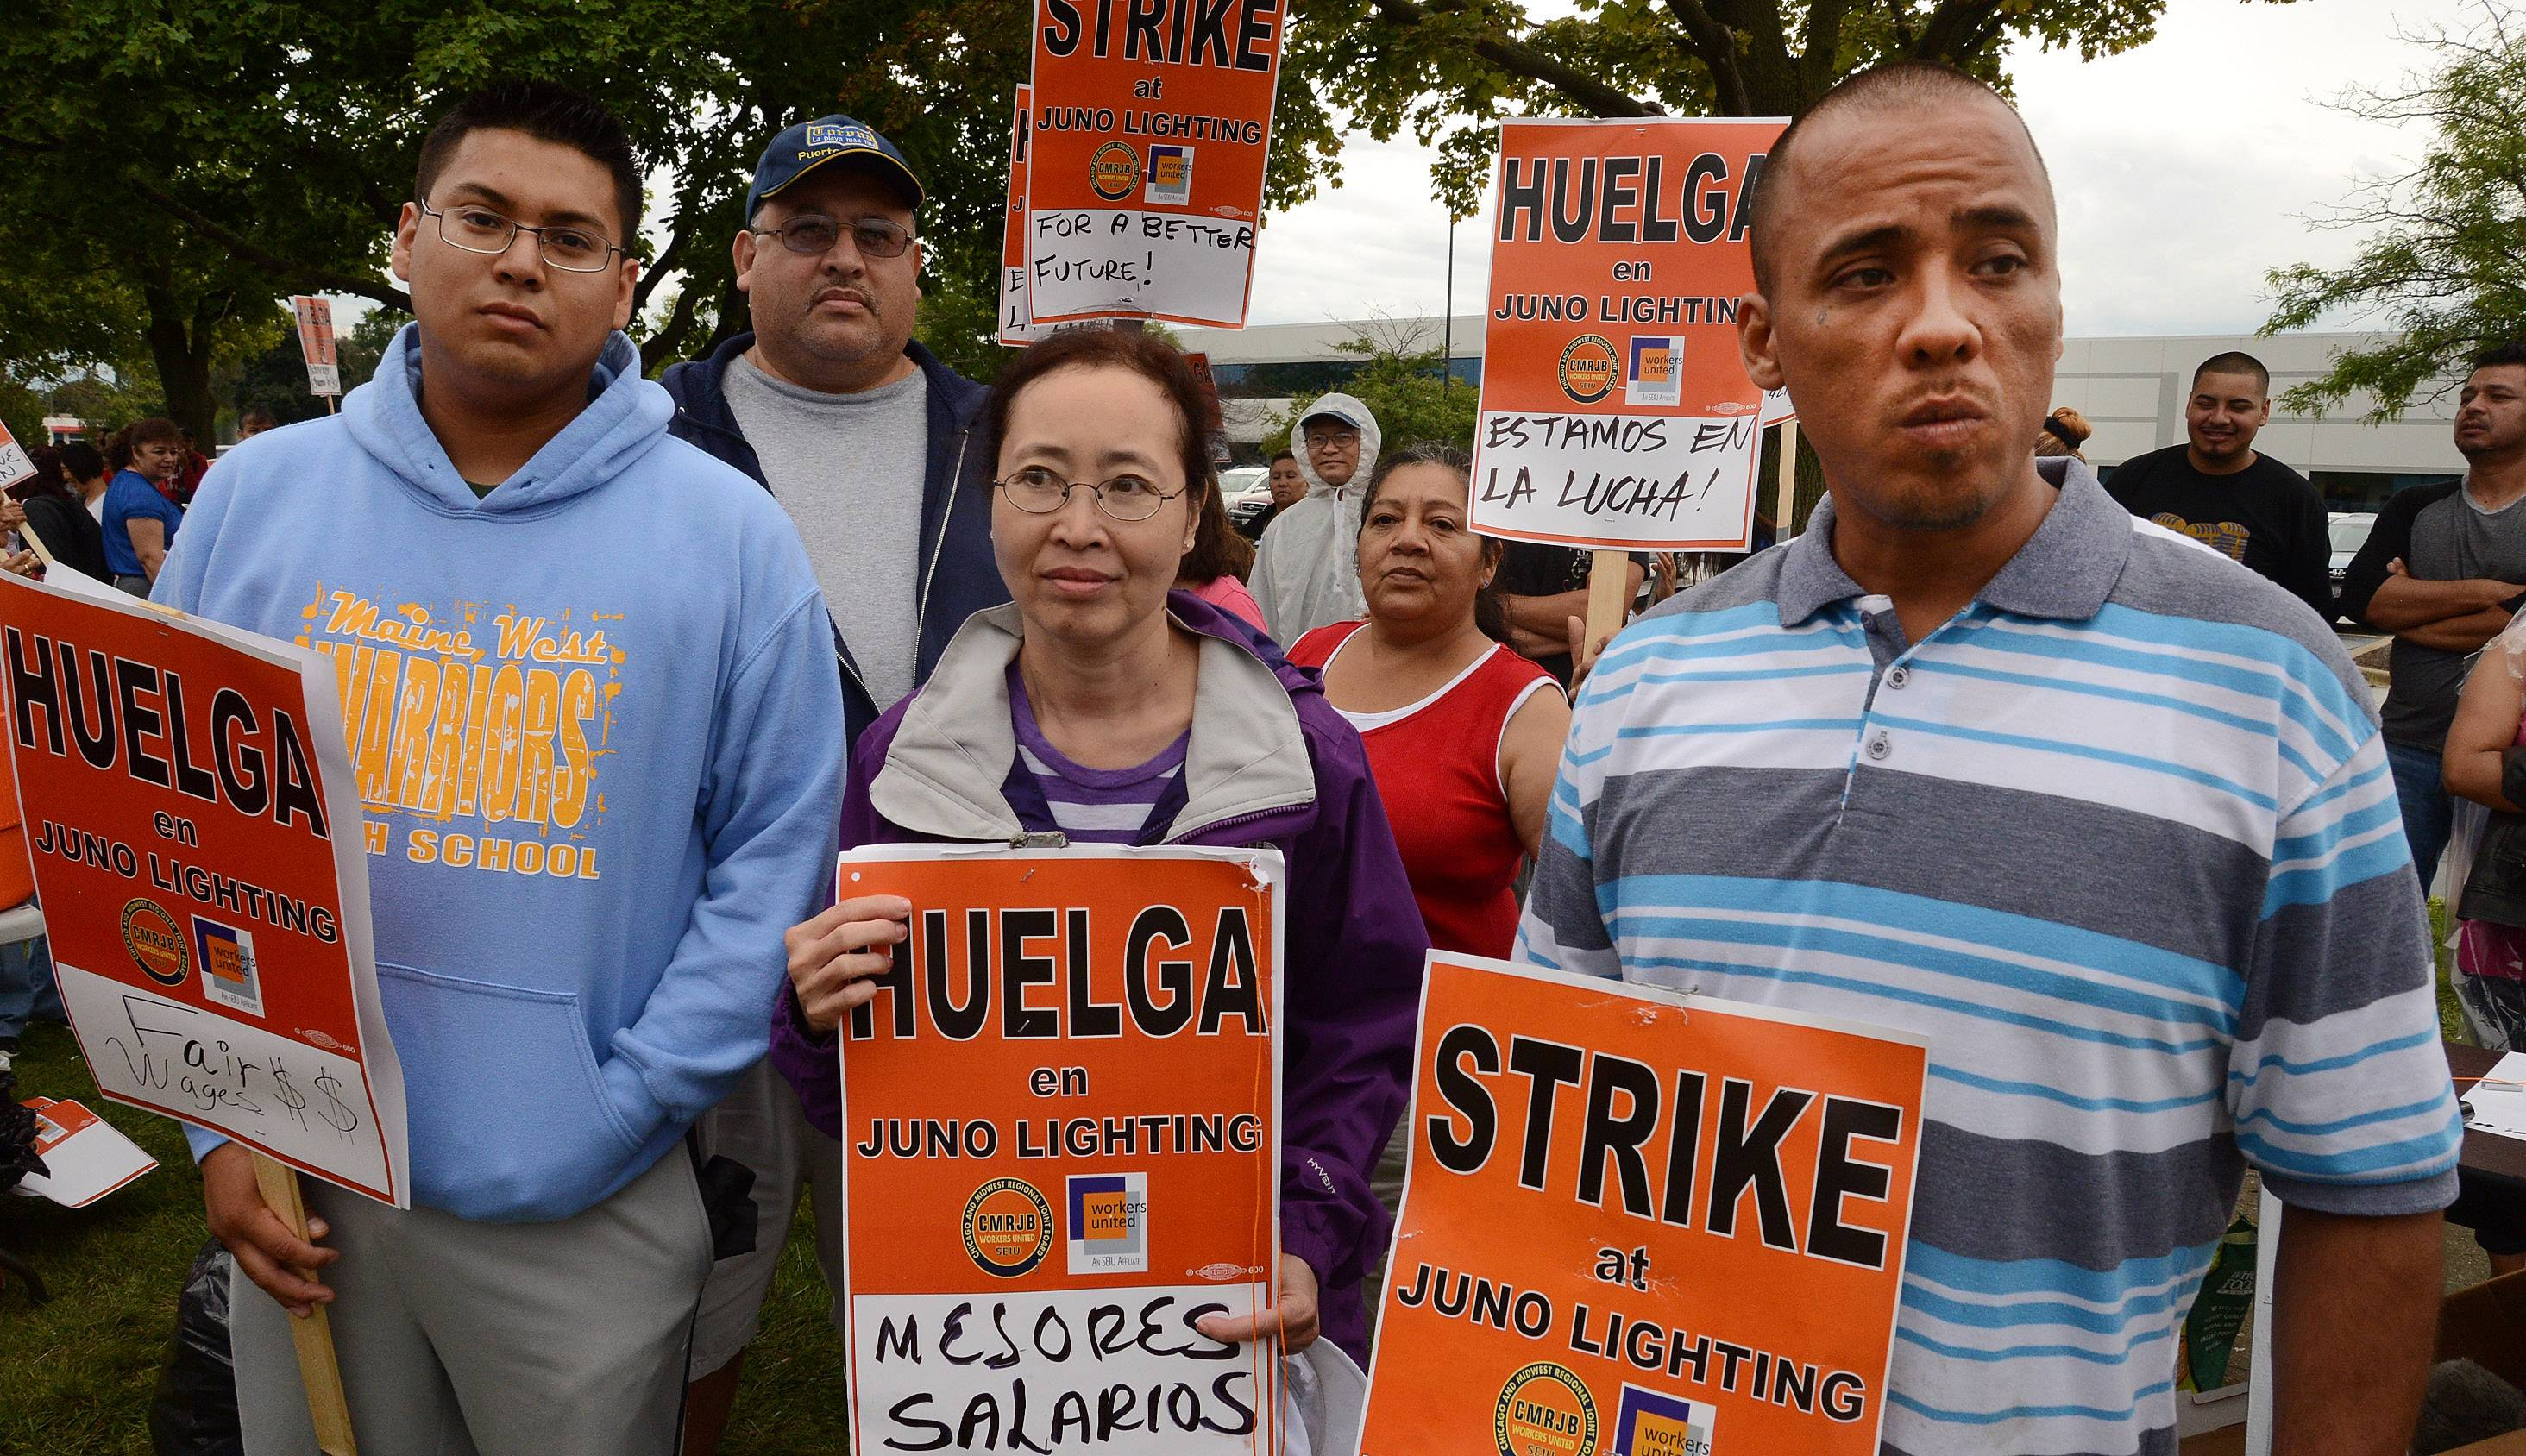 From left, Felipe Delgado of Des Plaines, Tuyet Huynh of Chicago, and Malaquias Gutierrez of Chicago, were among the Juno Lighting Group workers on strike Thursday in Des Plaines.